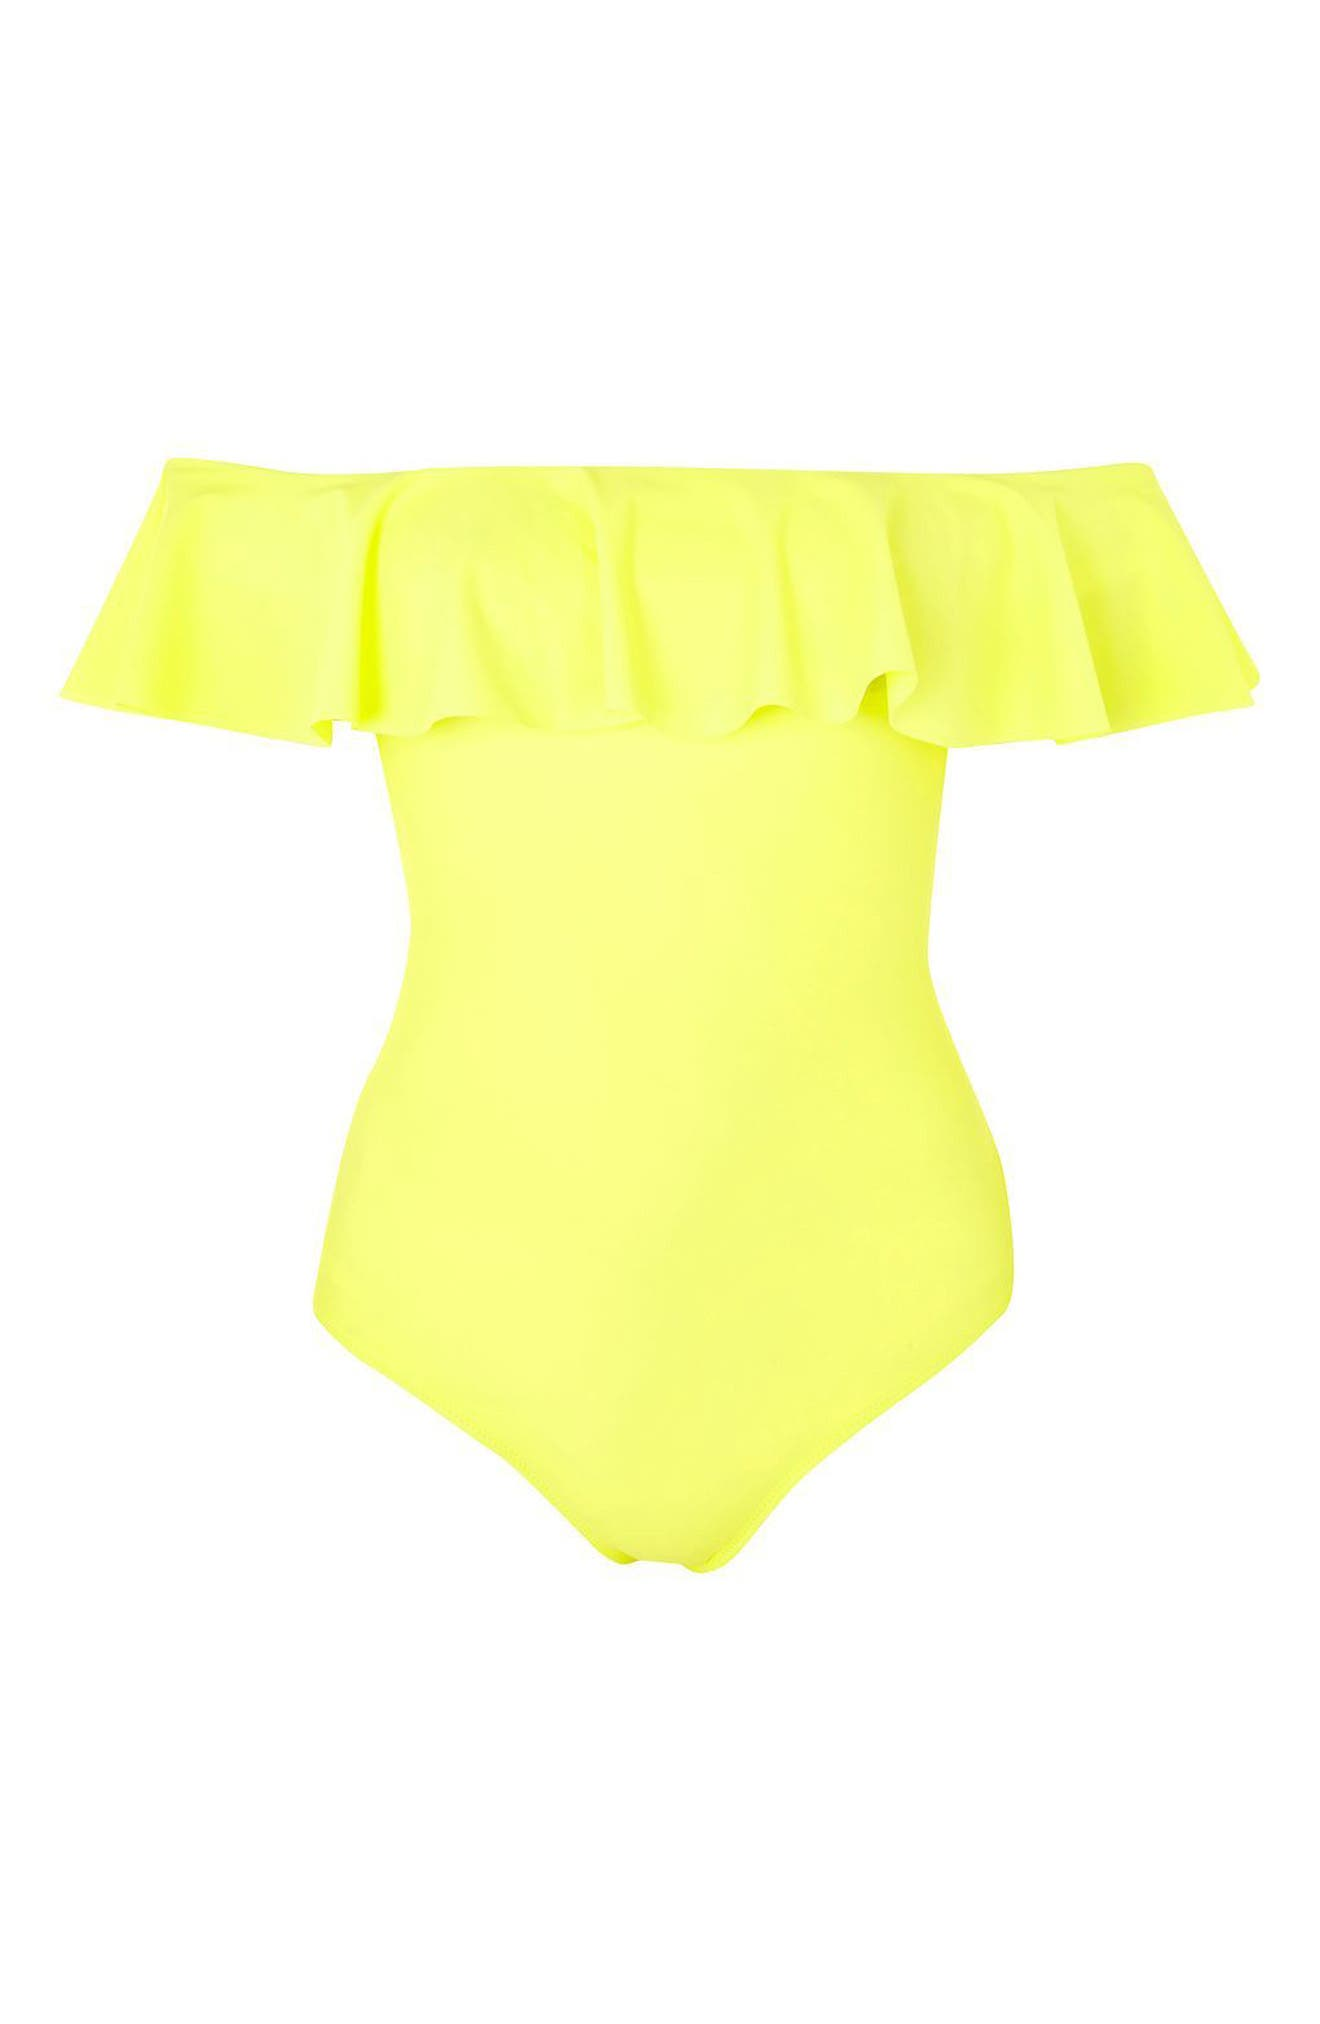 Alternate Image 1 Selected - Topshop Ruffle Off the Shoulder One-Piece Swimsuit